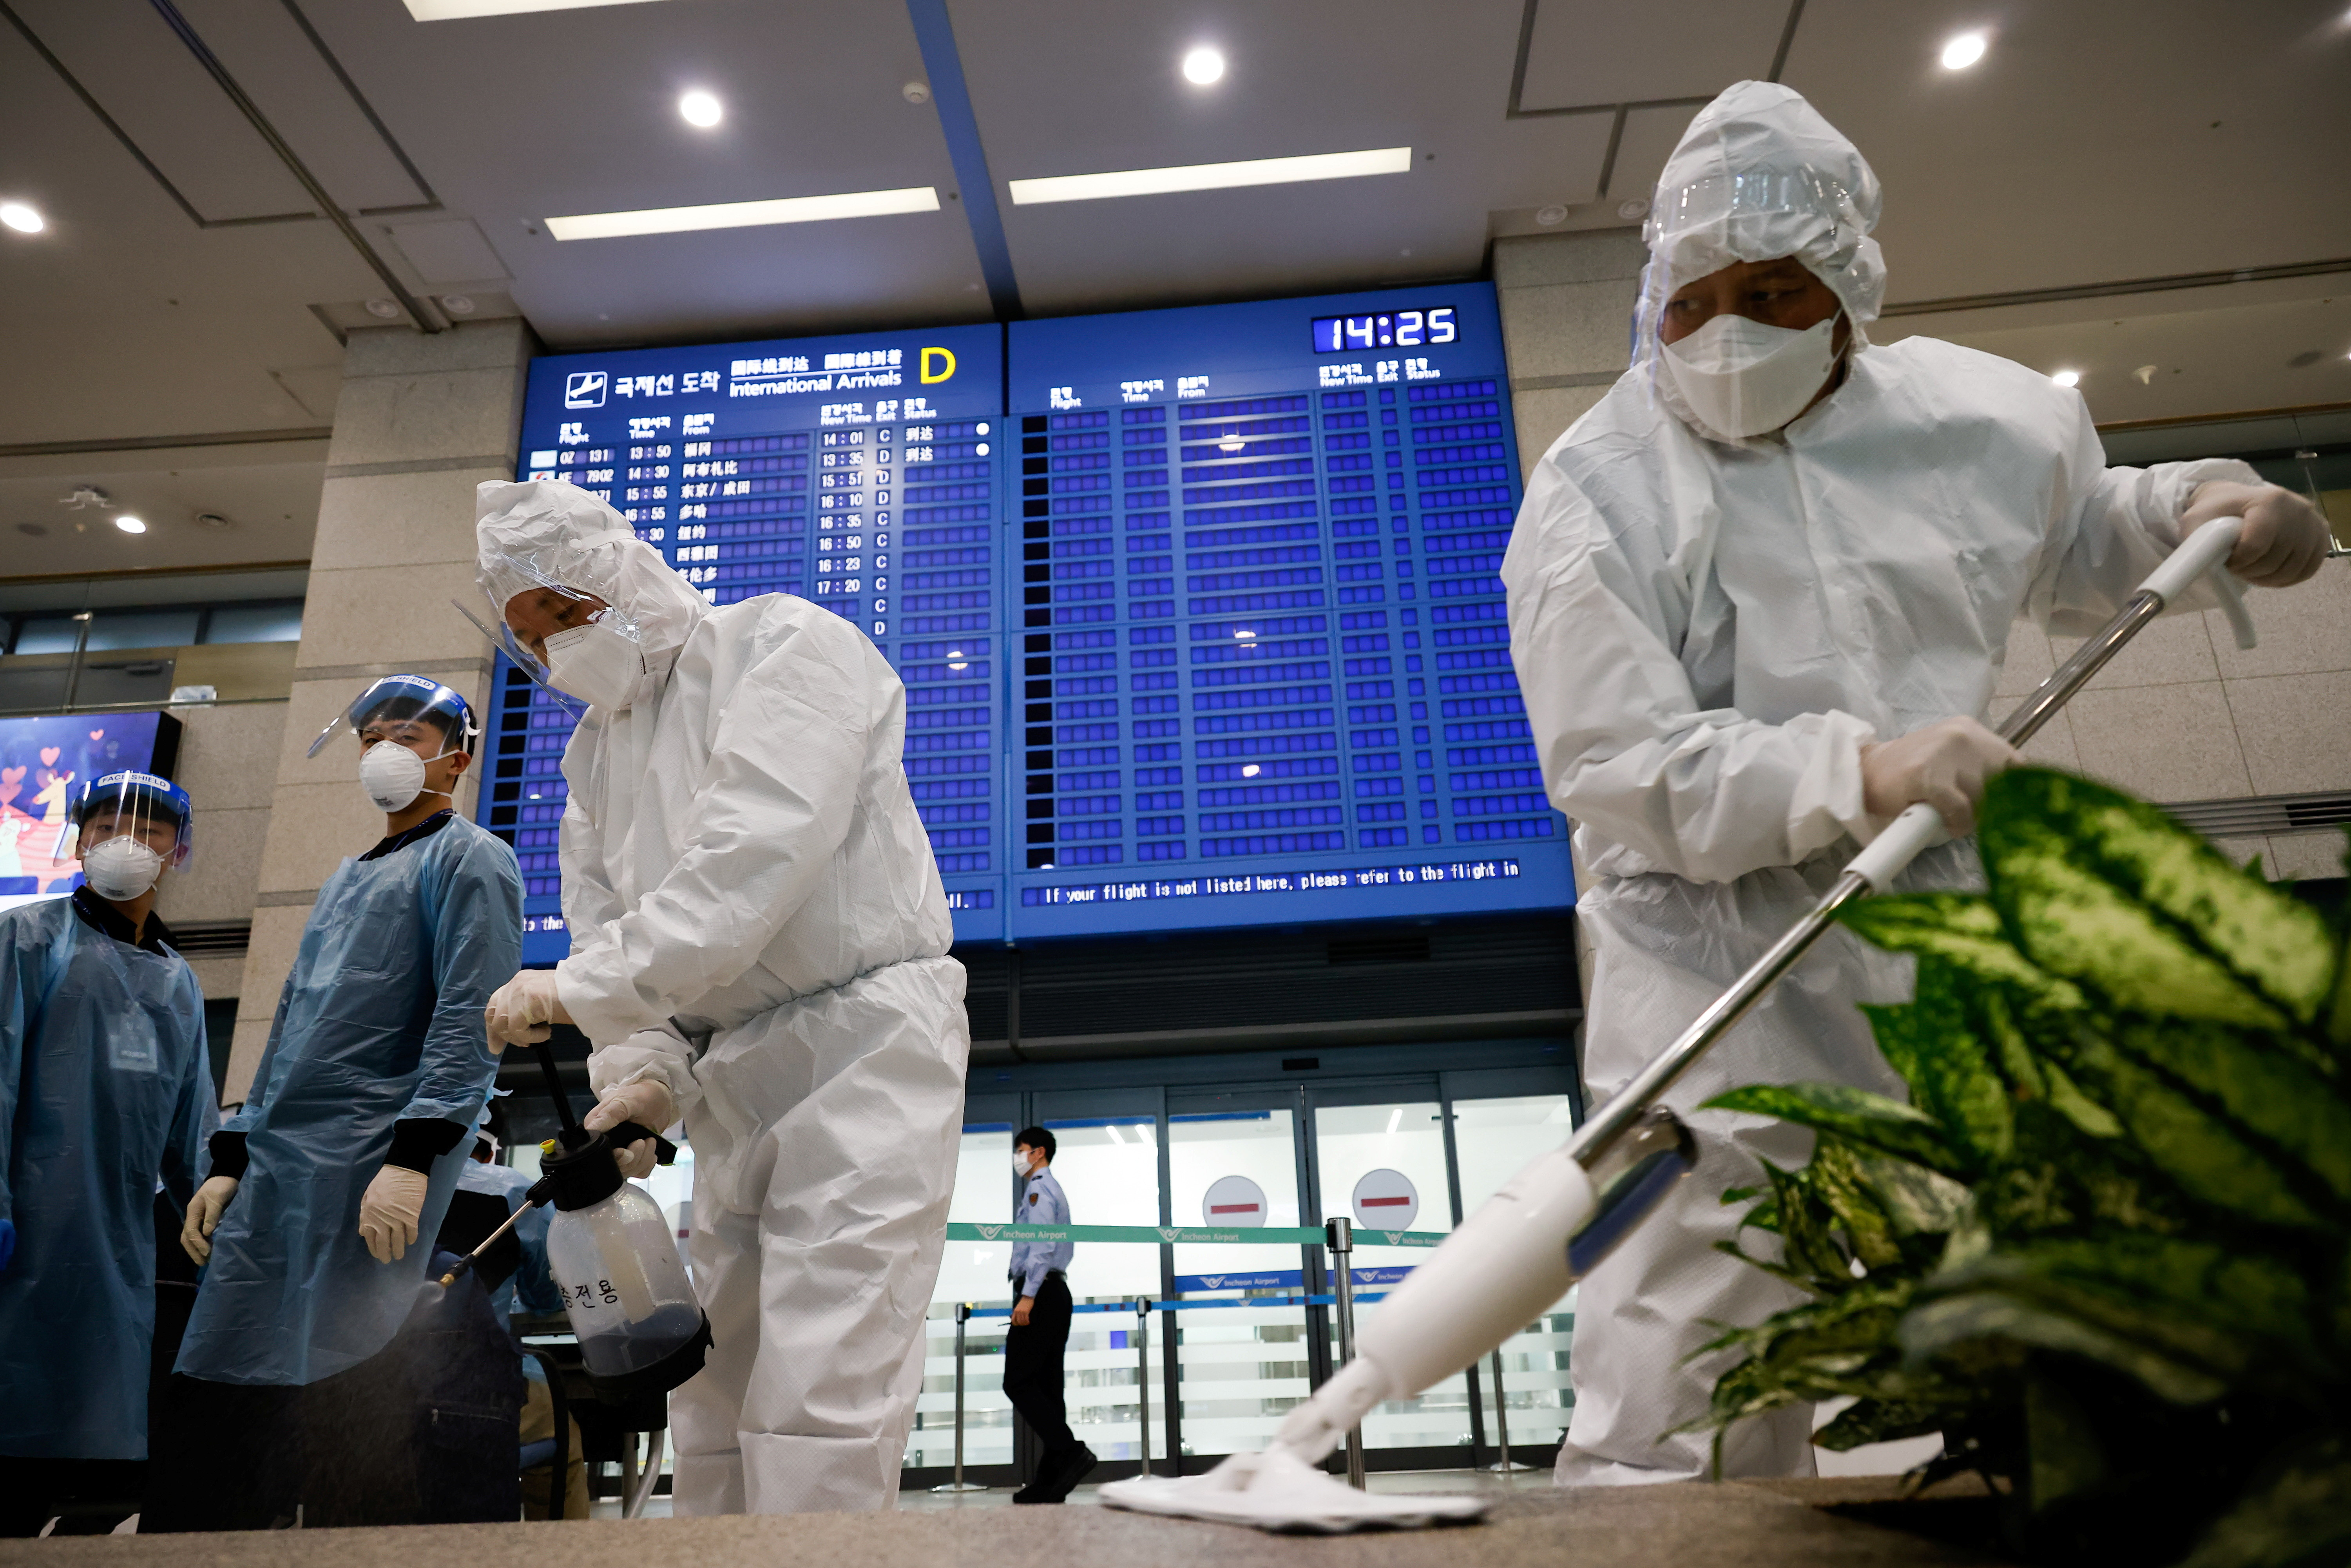 Workers wearing protective gear disinfect an arrival gate as an electronic board shows arrivals' information amid the coronavirus disease (COVID-19) pandemic at the Incheon International Airport in Incheon, South Korea, December 28, 2020. REUTERS/Kim Hong-Ji - RC27WK9DVM1P